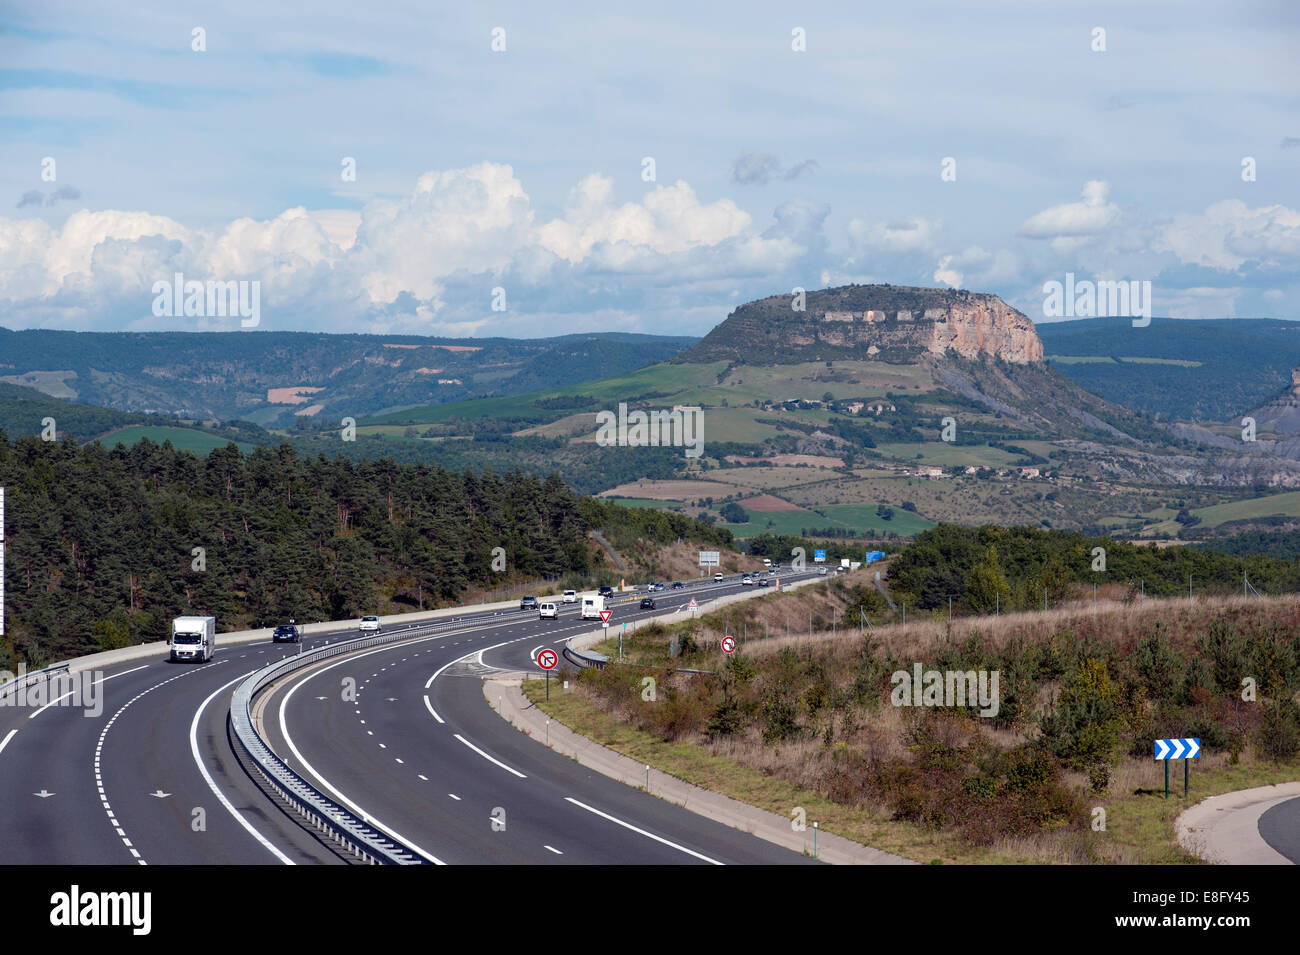 France A75 Autoroute Looking North Towards Volcanic Plug In Gorges Du Tarn Area Of